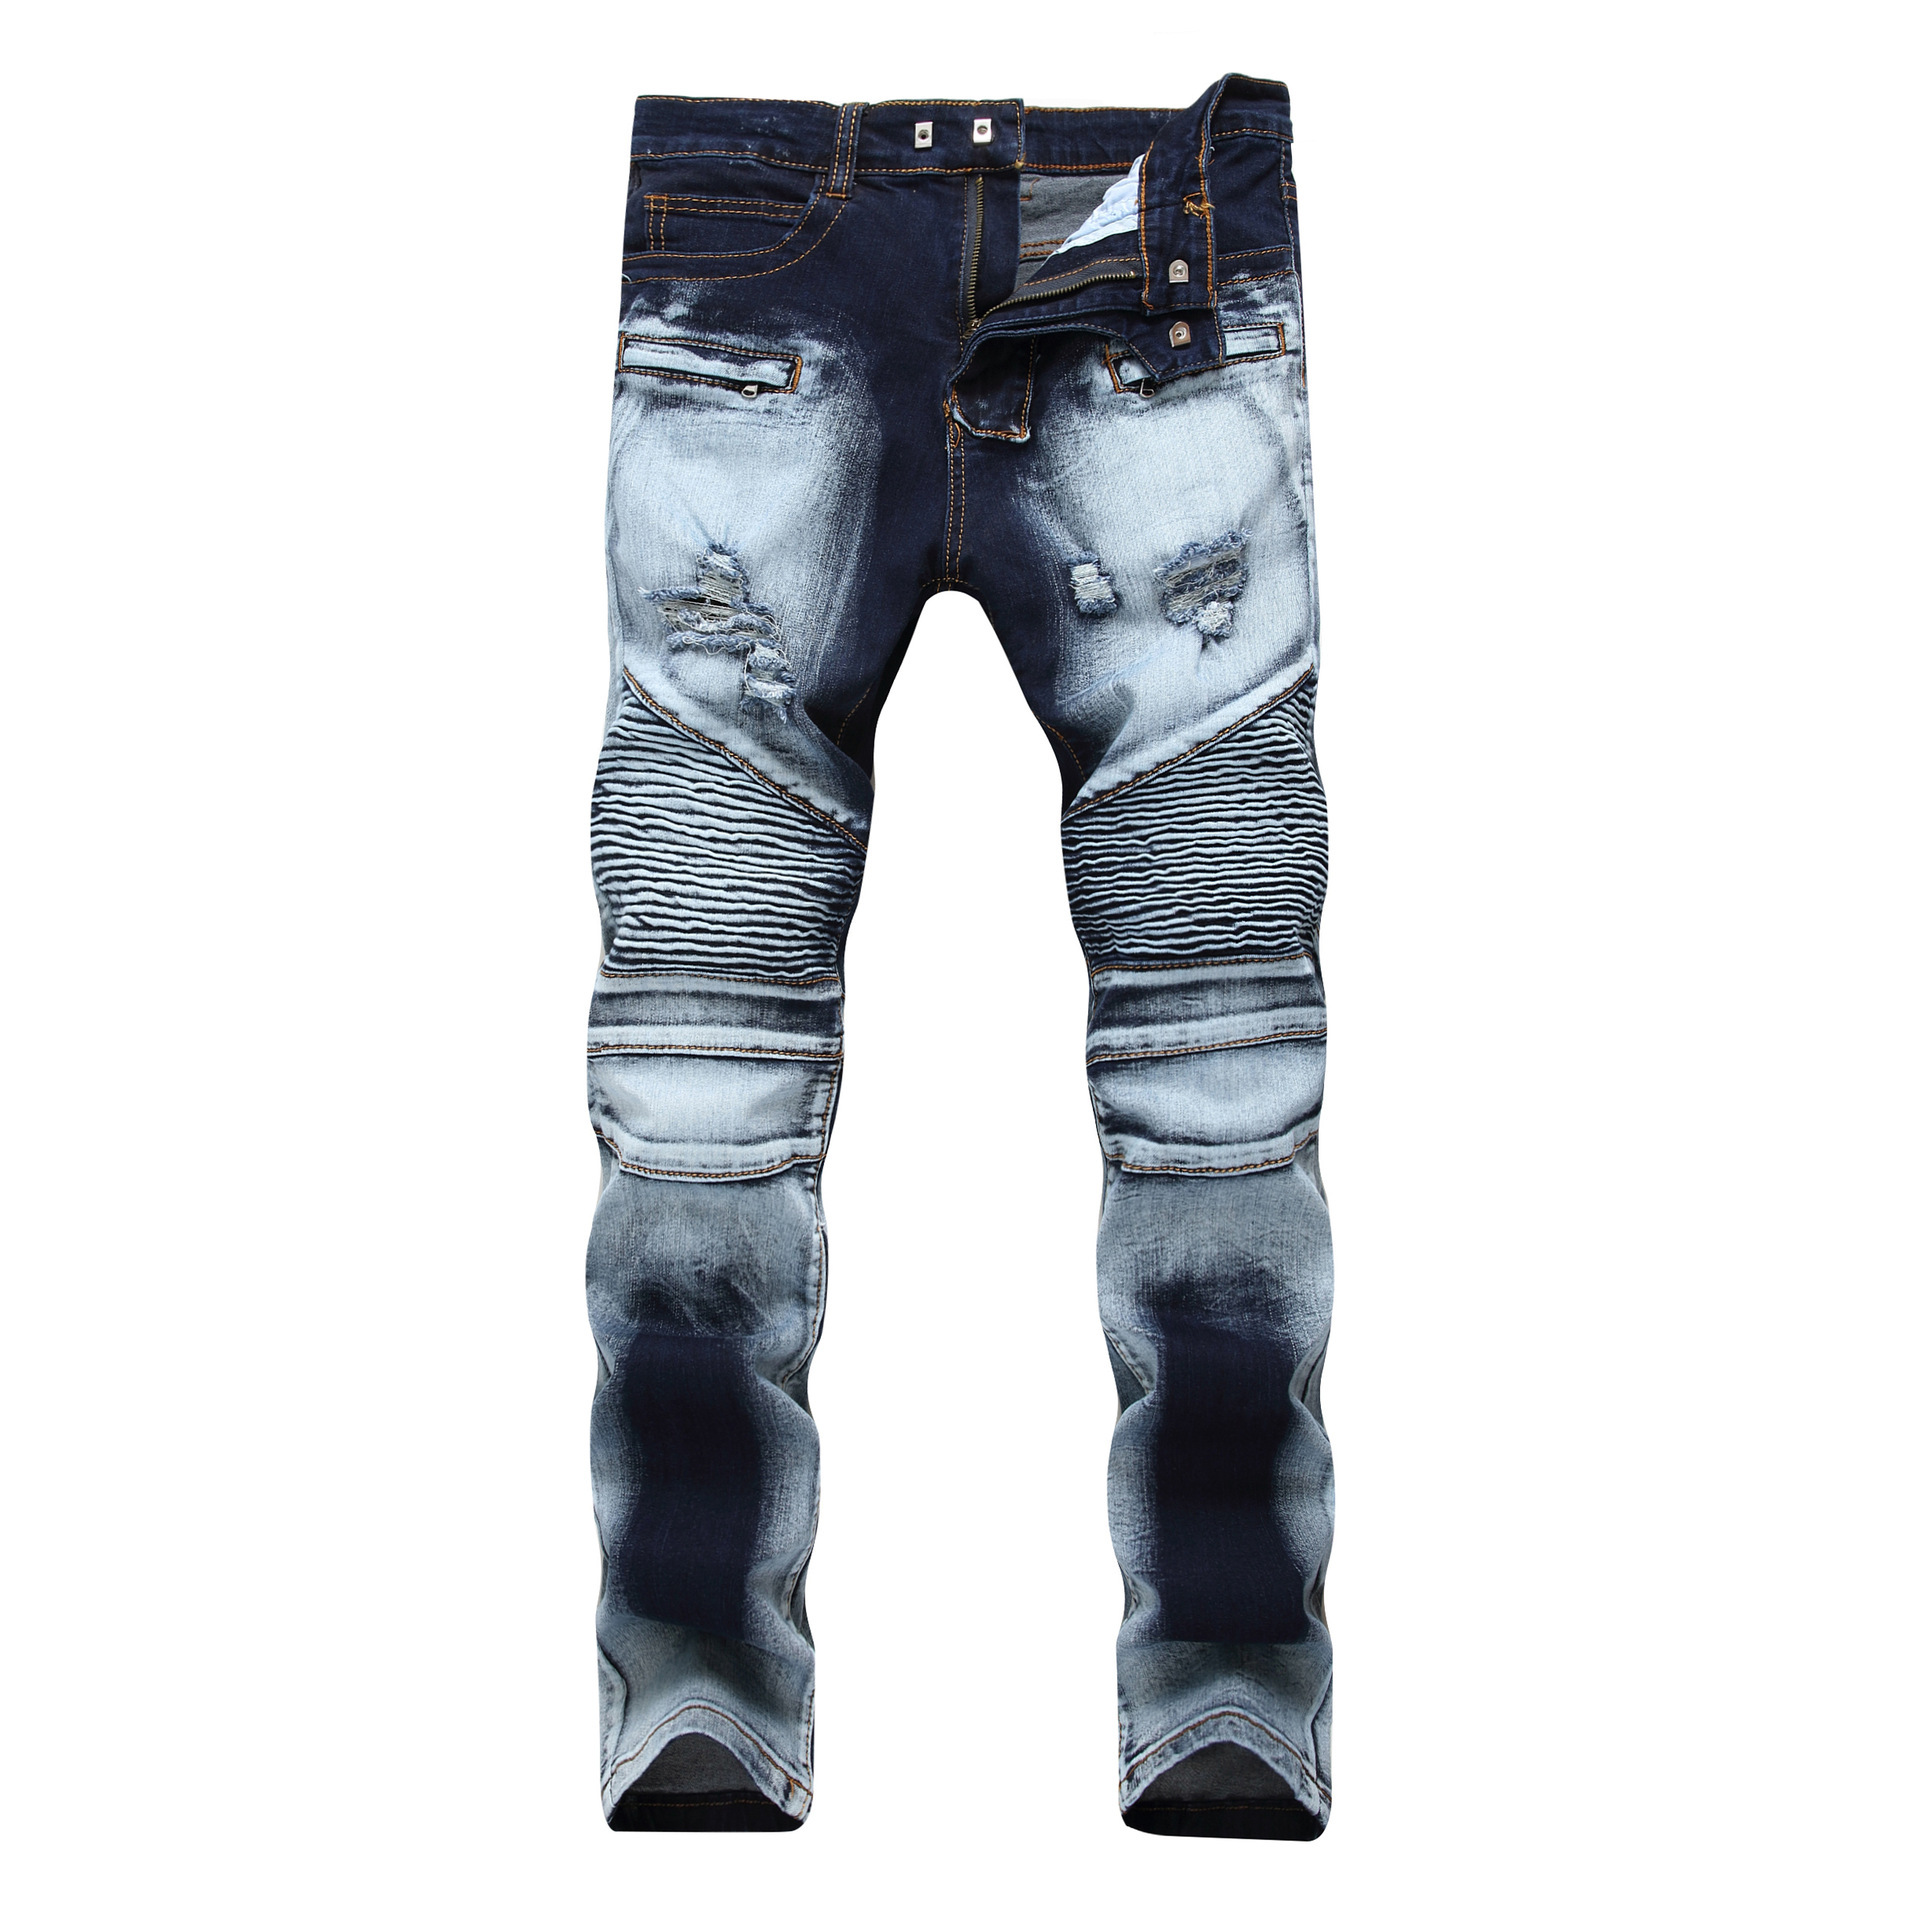 FOR MEN'S WEAR Europe And America High Street Slim Fit Elasticity Jeans Da Tiao Zipper With Holes Double Color Faded Trousers